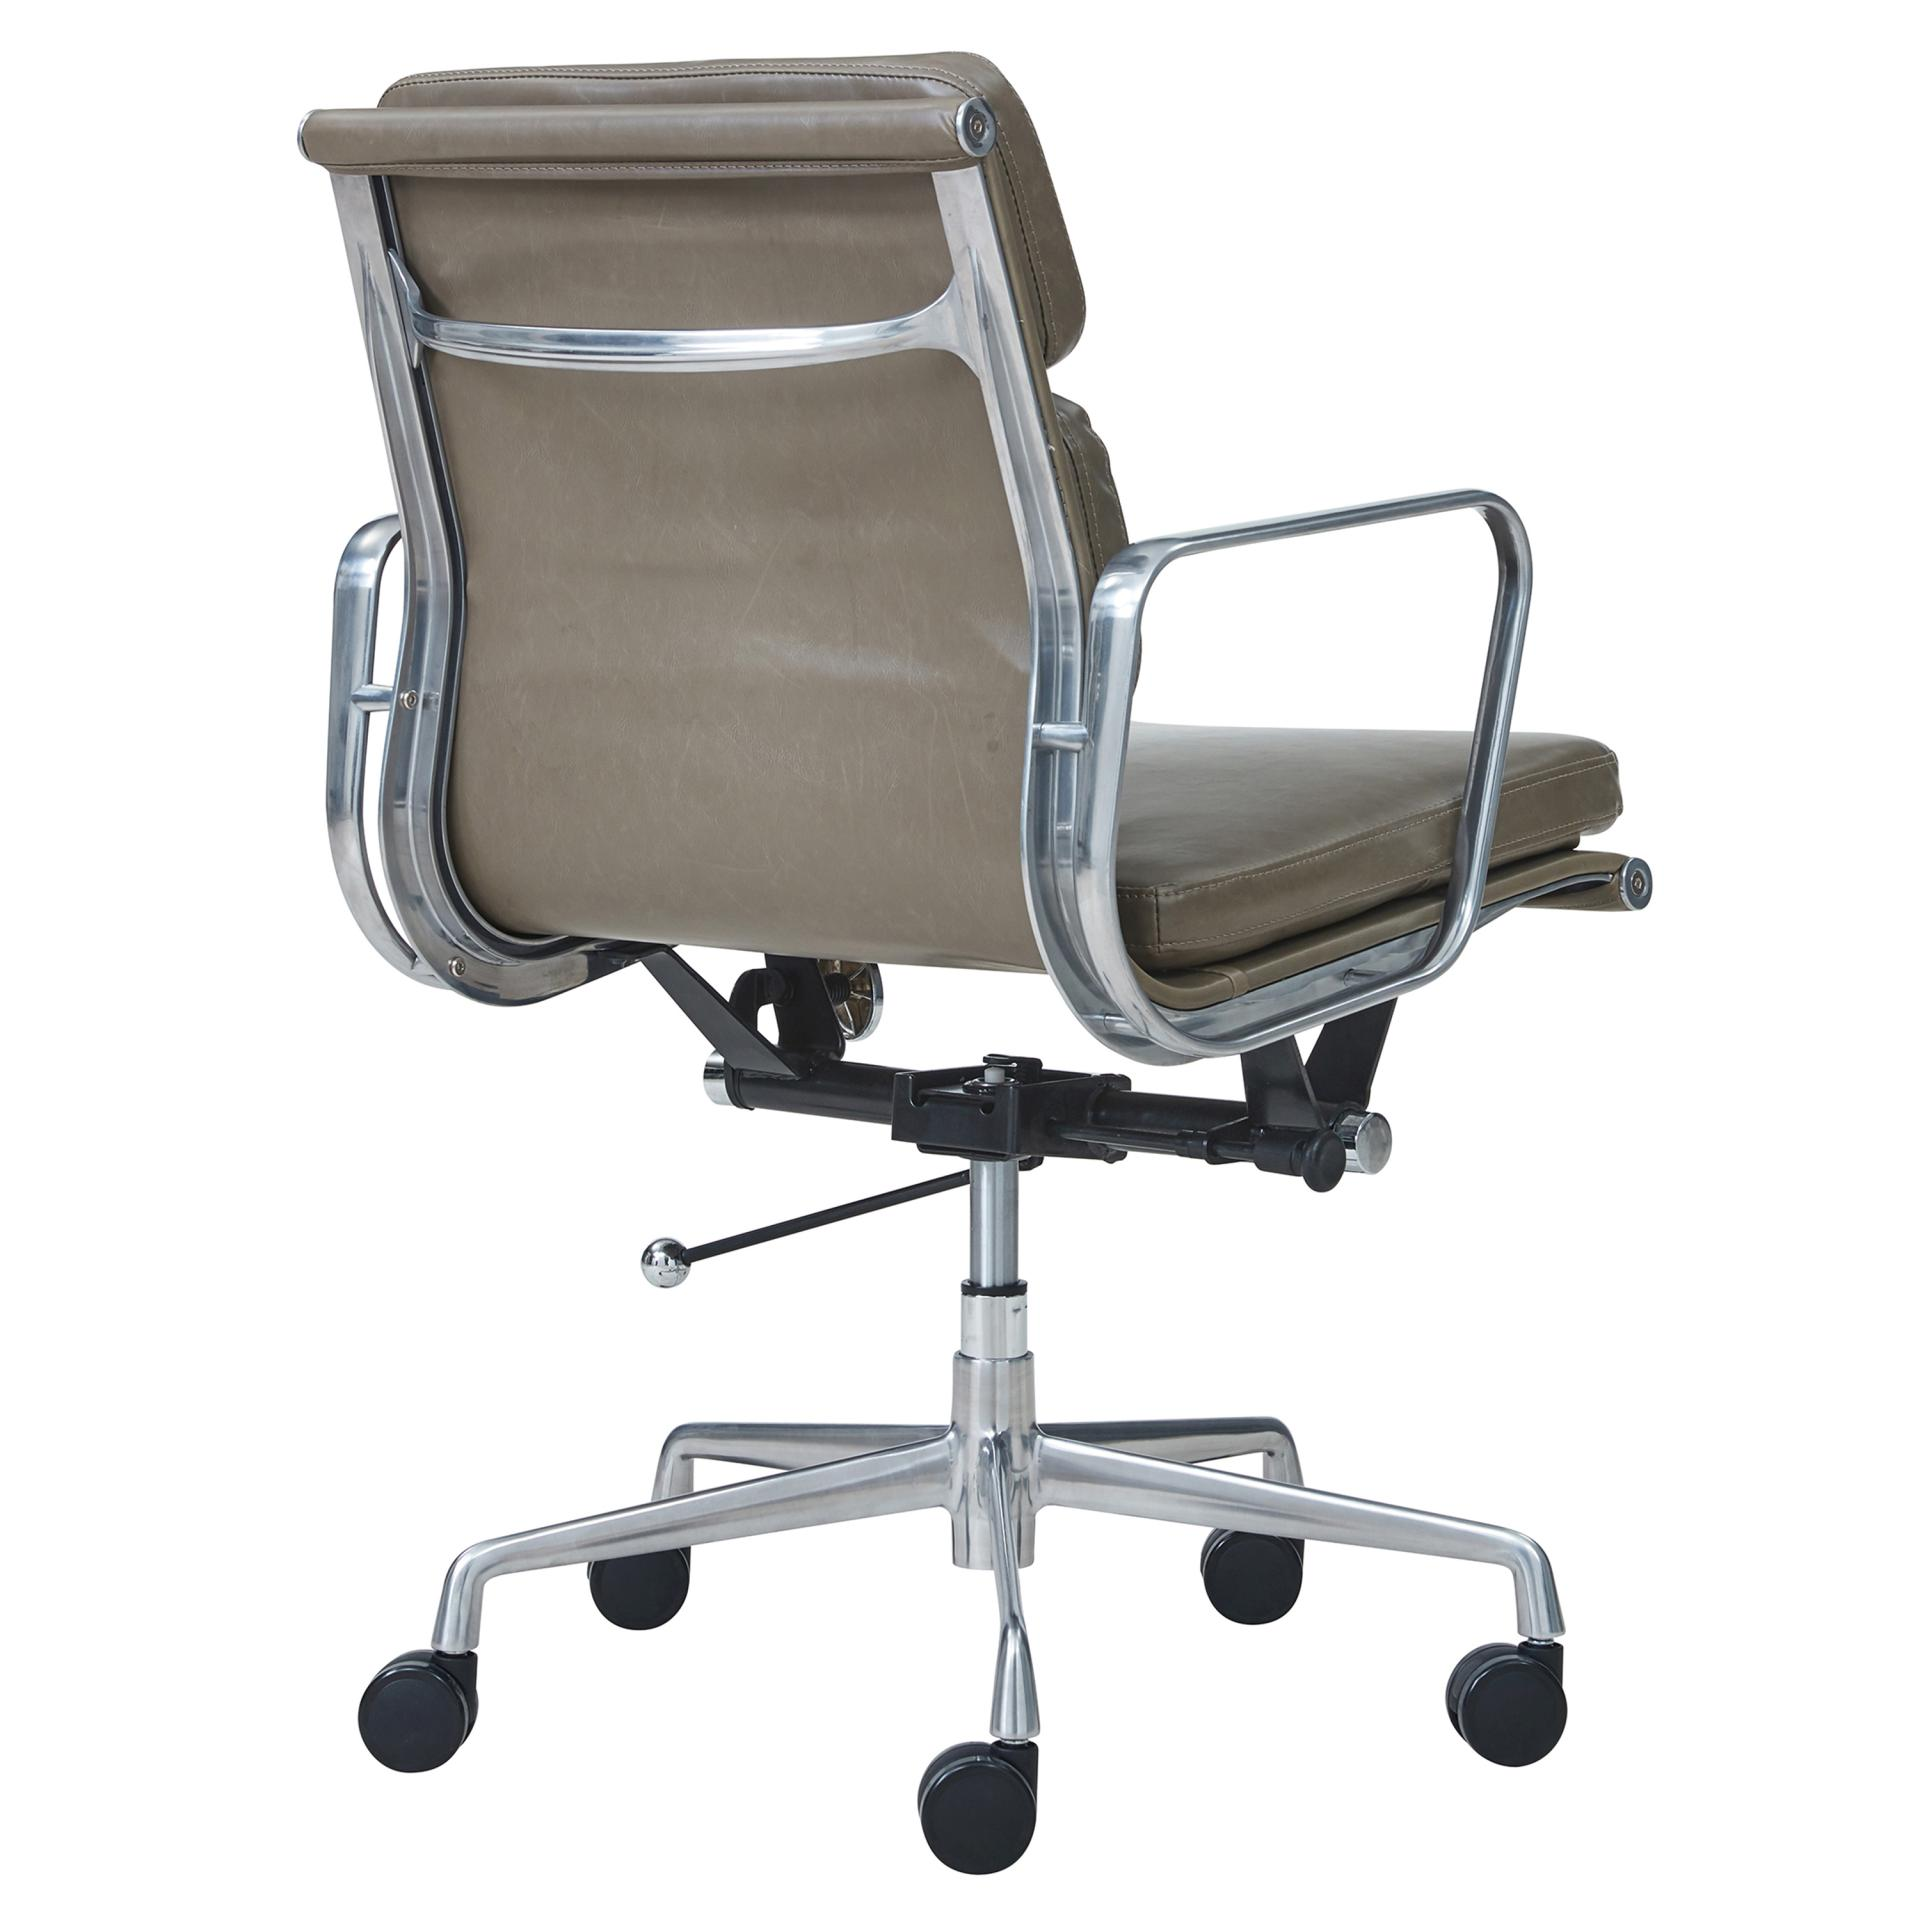 low back chairs for concerts guy brown office 6900002 vs npd furniture stylish and affordable